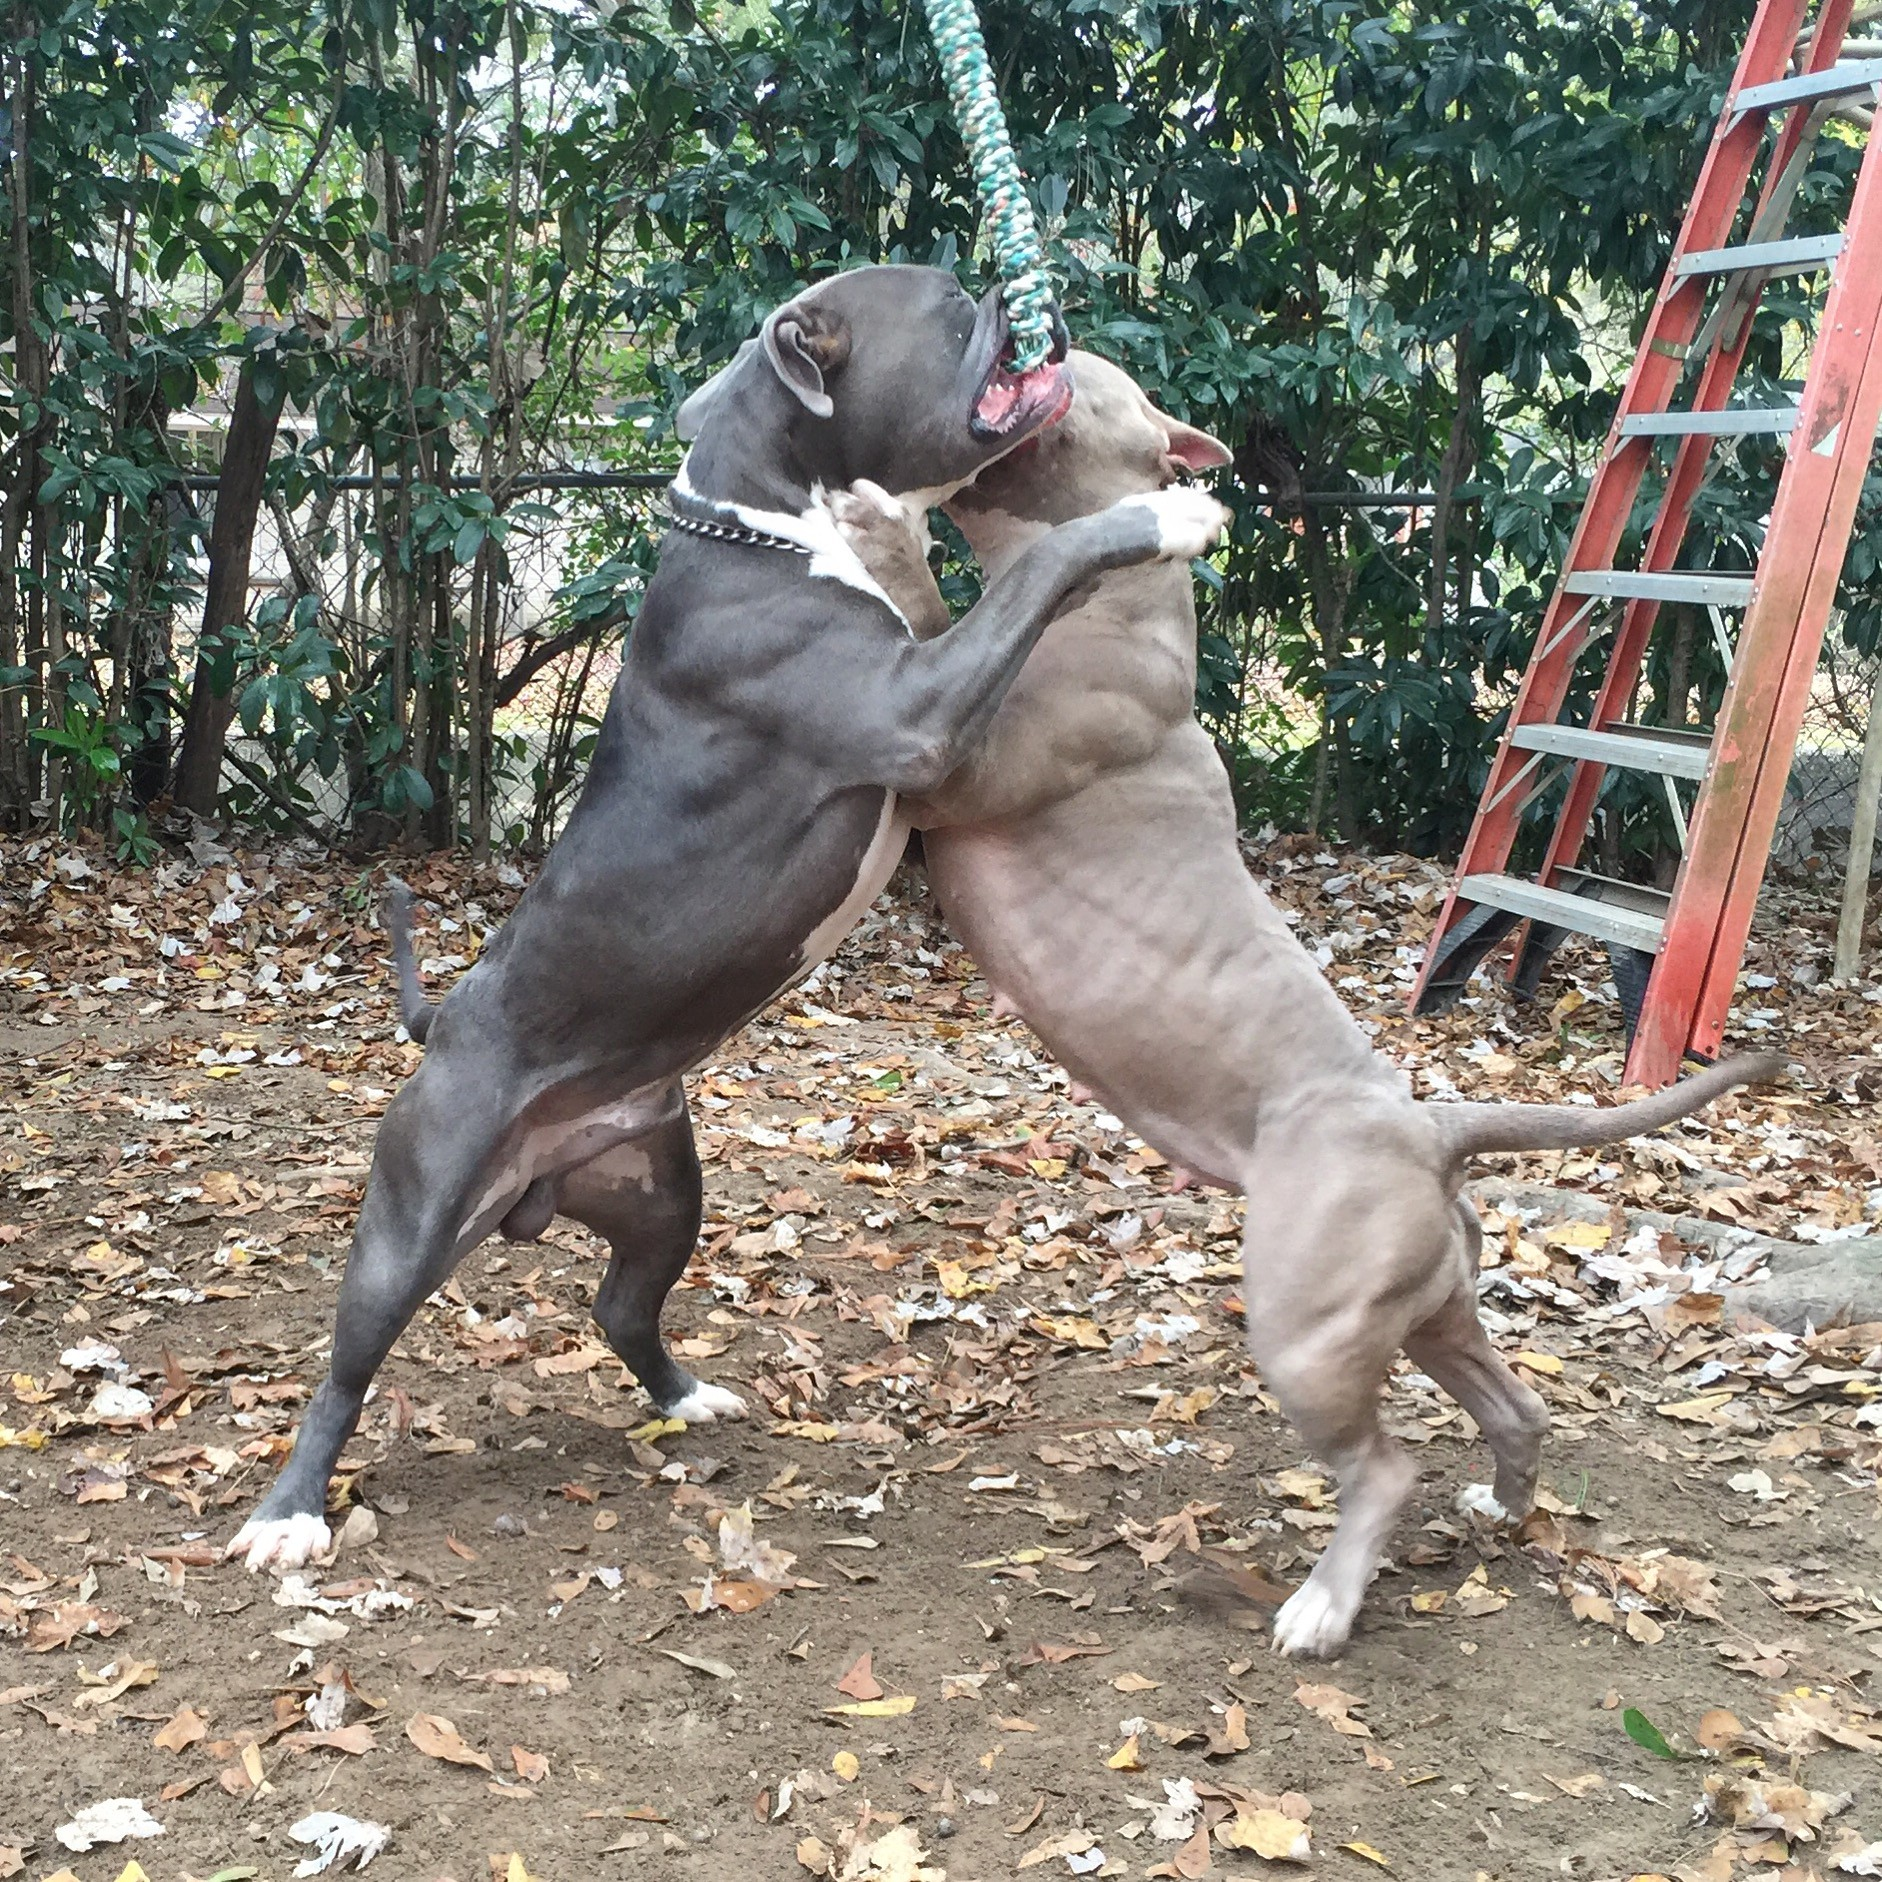 pit bulls working on the spring pole